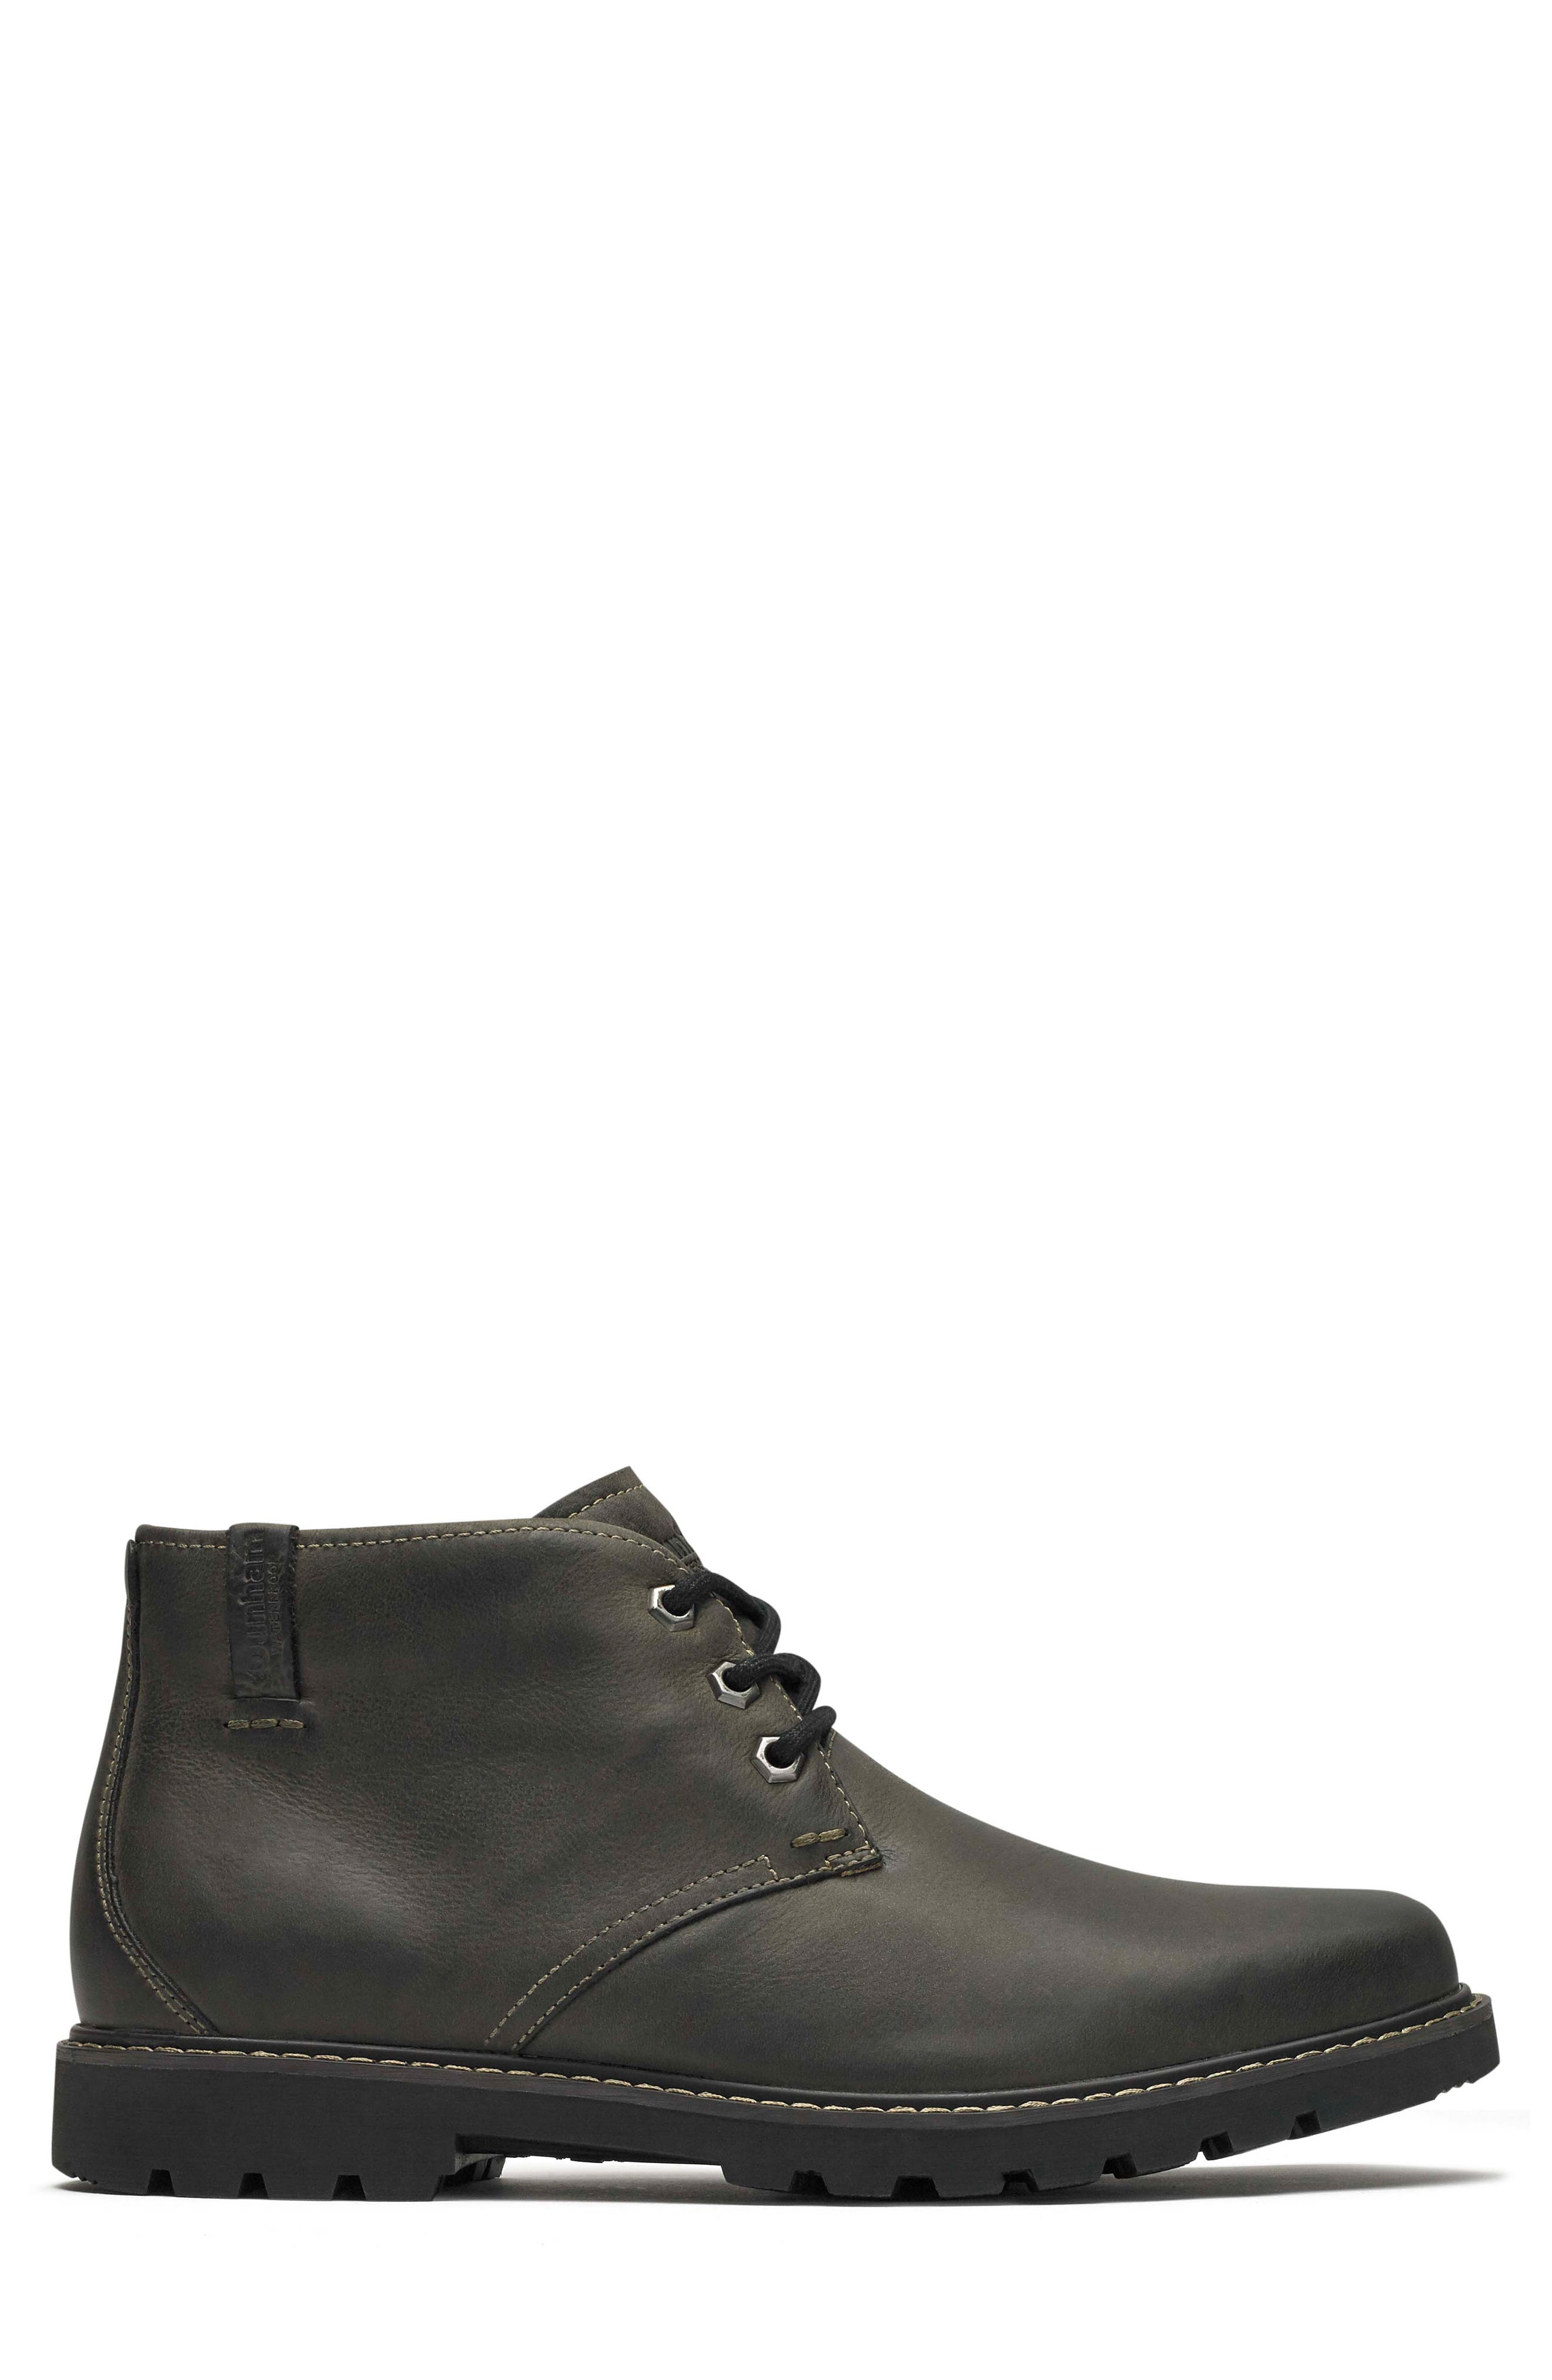 DUNHAM, Royalton Chukka Boot, Alternate thumbnail 3, color, FLAGSTONE LEATHER